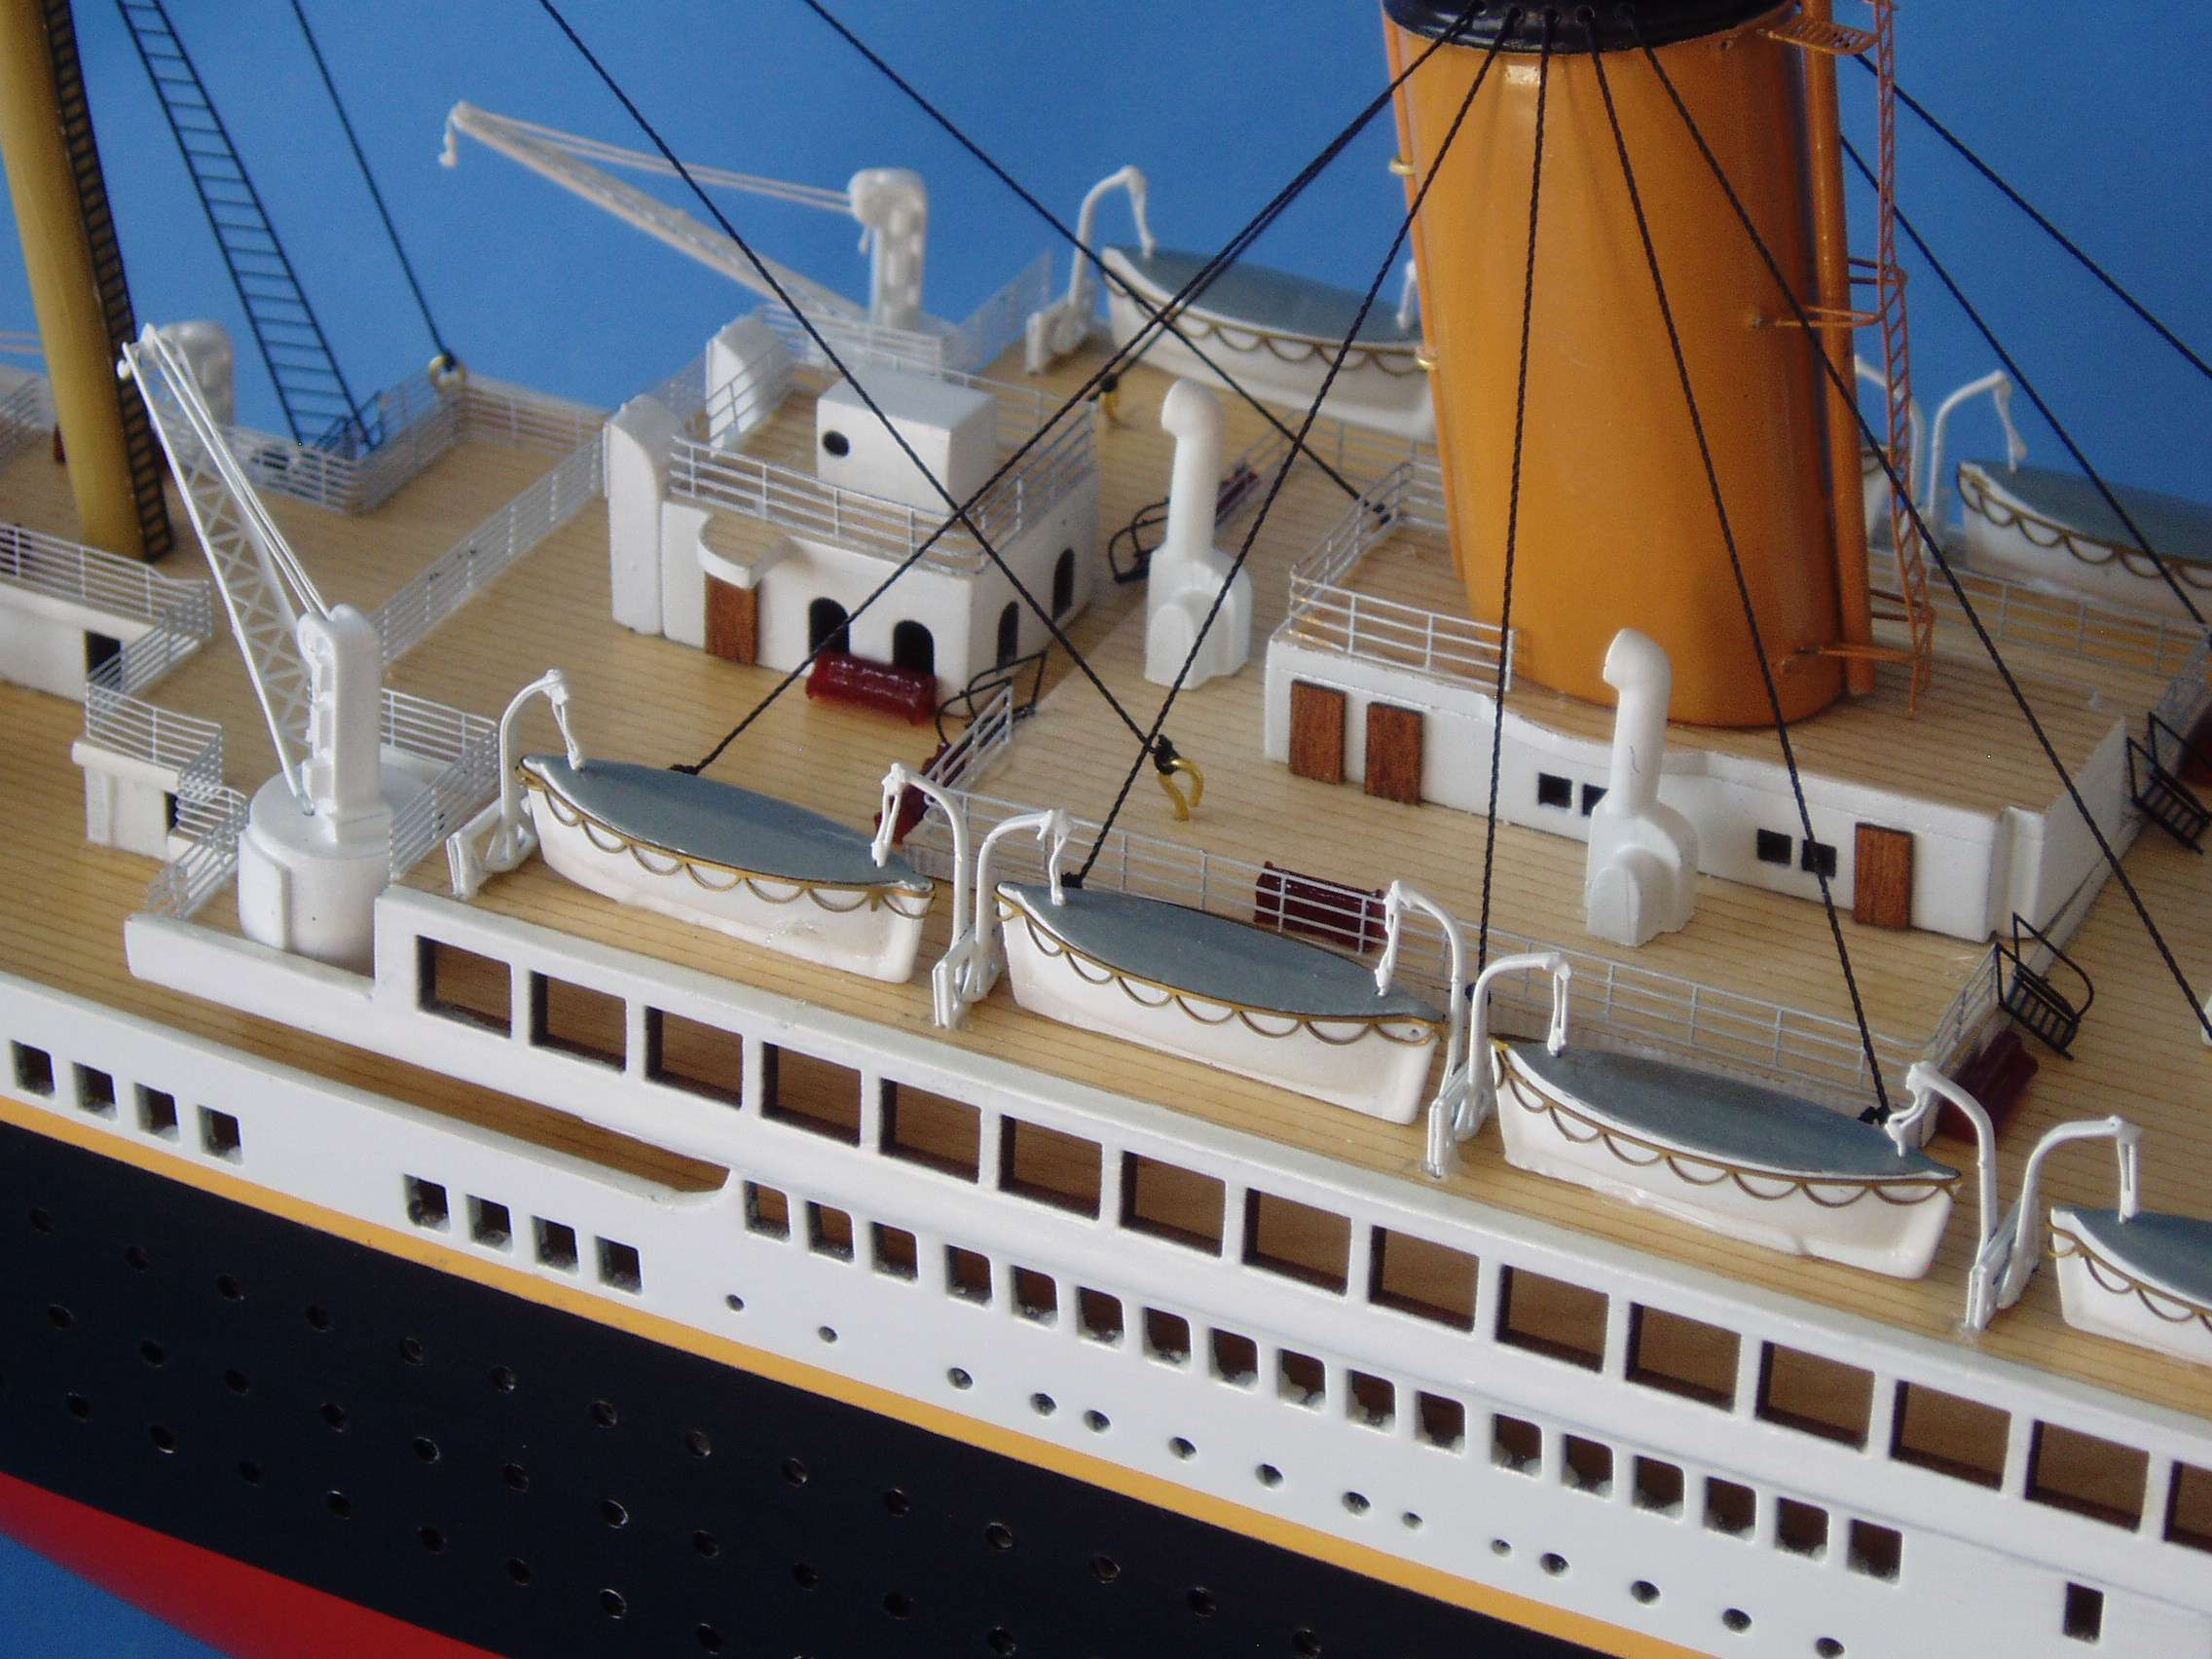 Rms Titanic Limited Model Cruise Ship 40 Quot